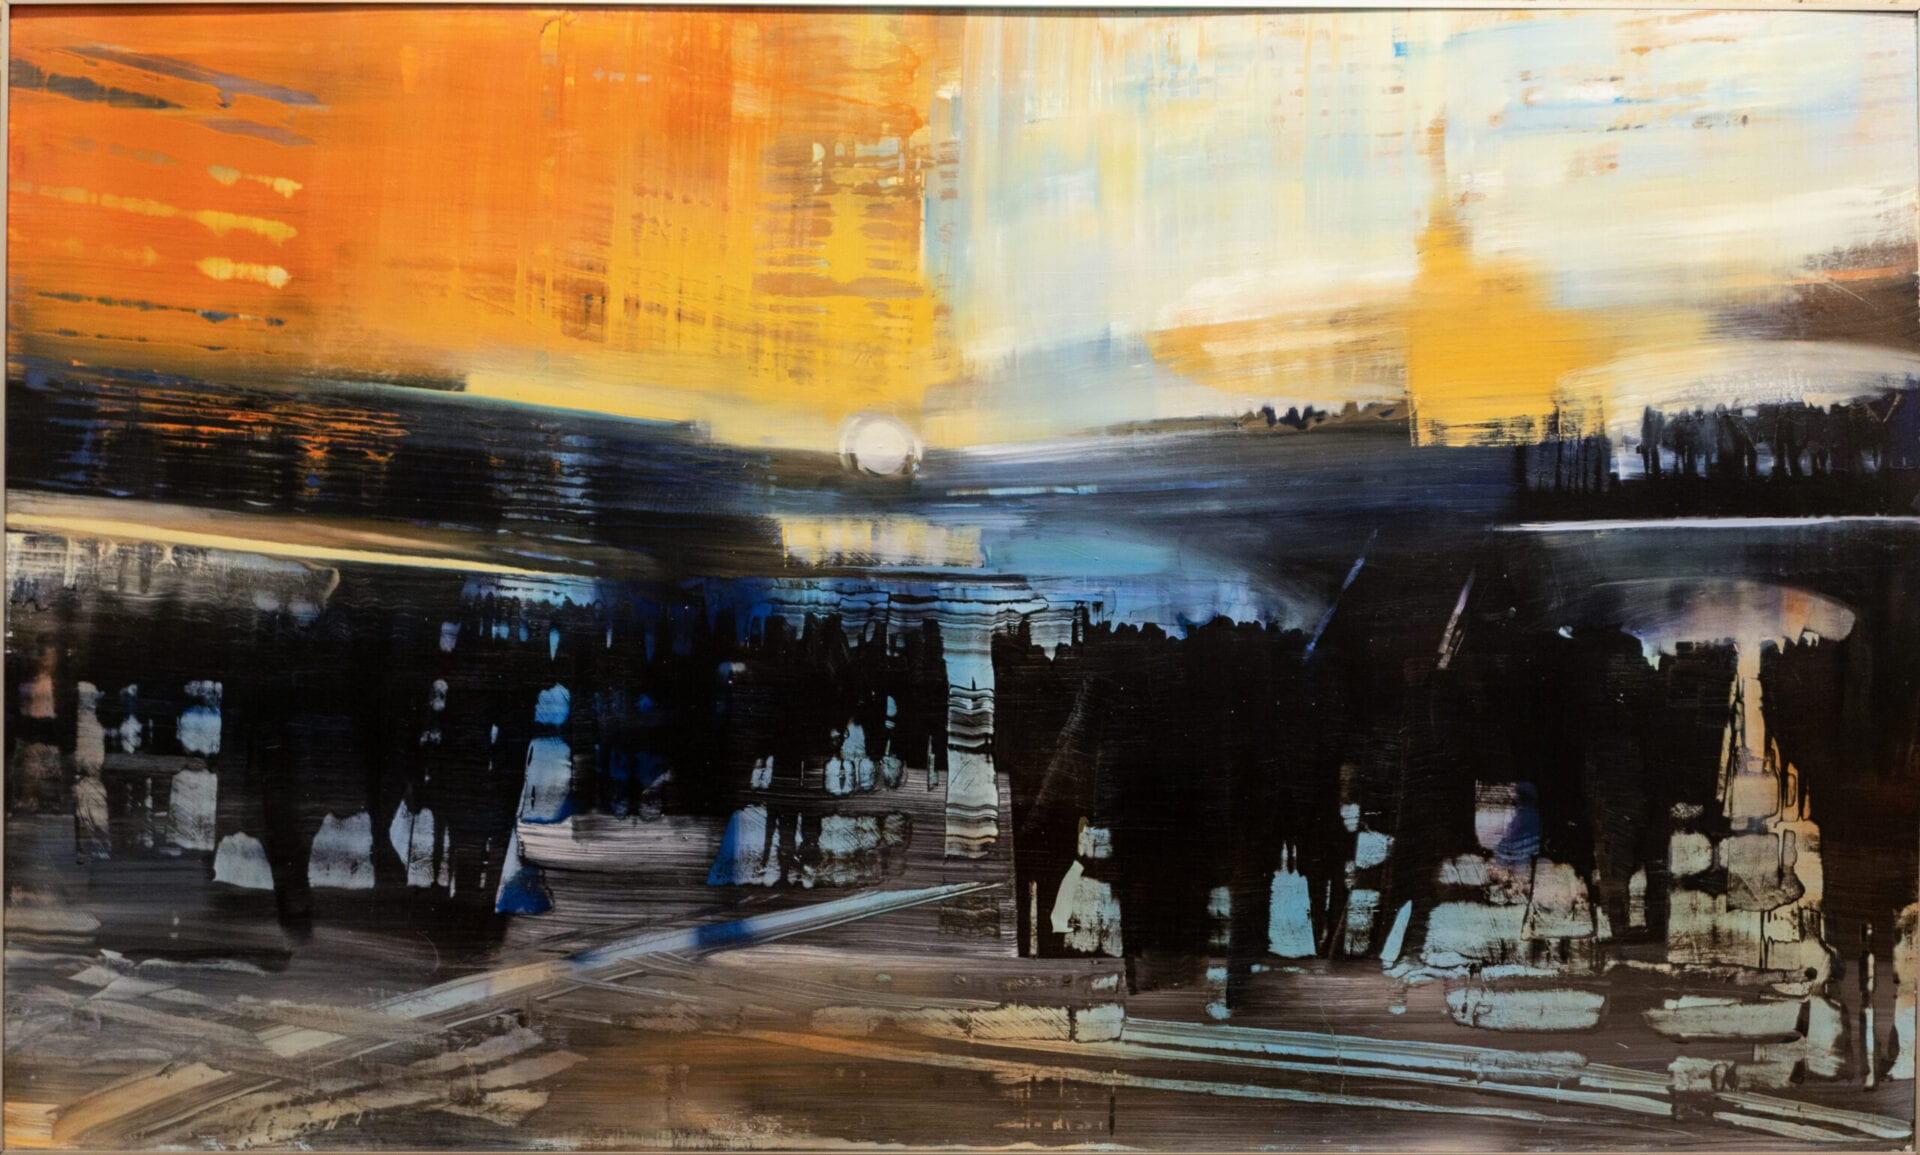 David Dunlop | City Life in the Station | 36 x 60"